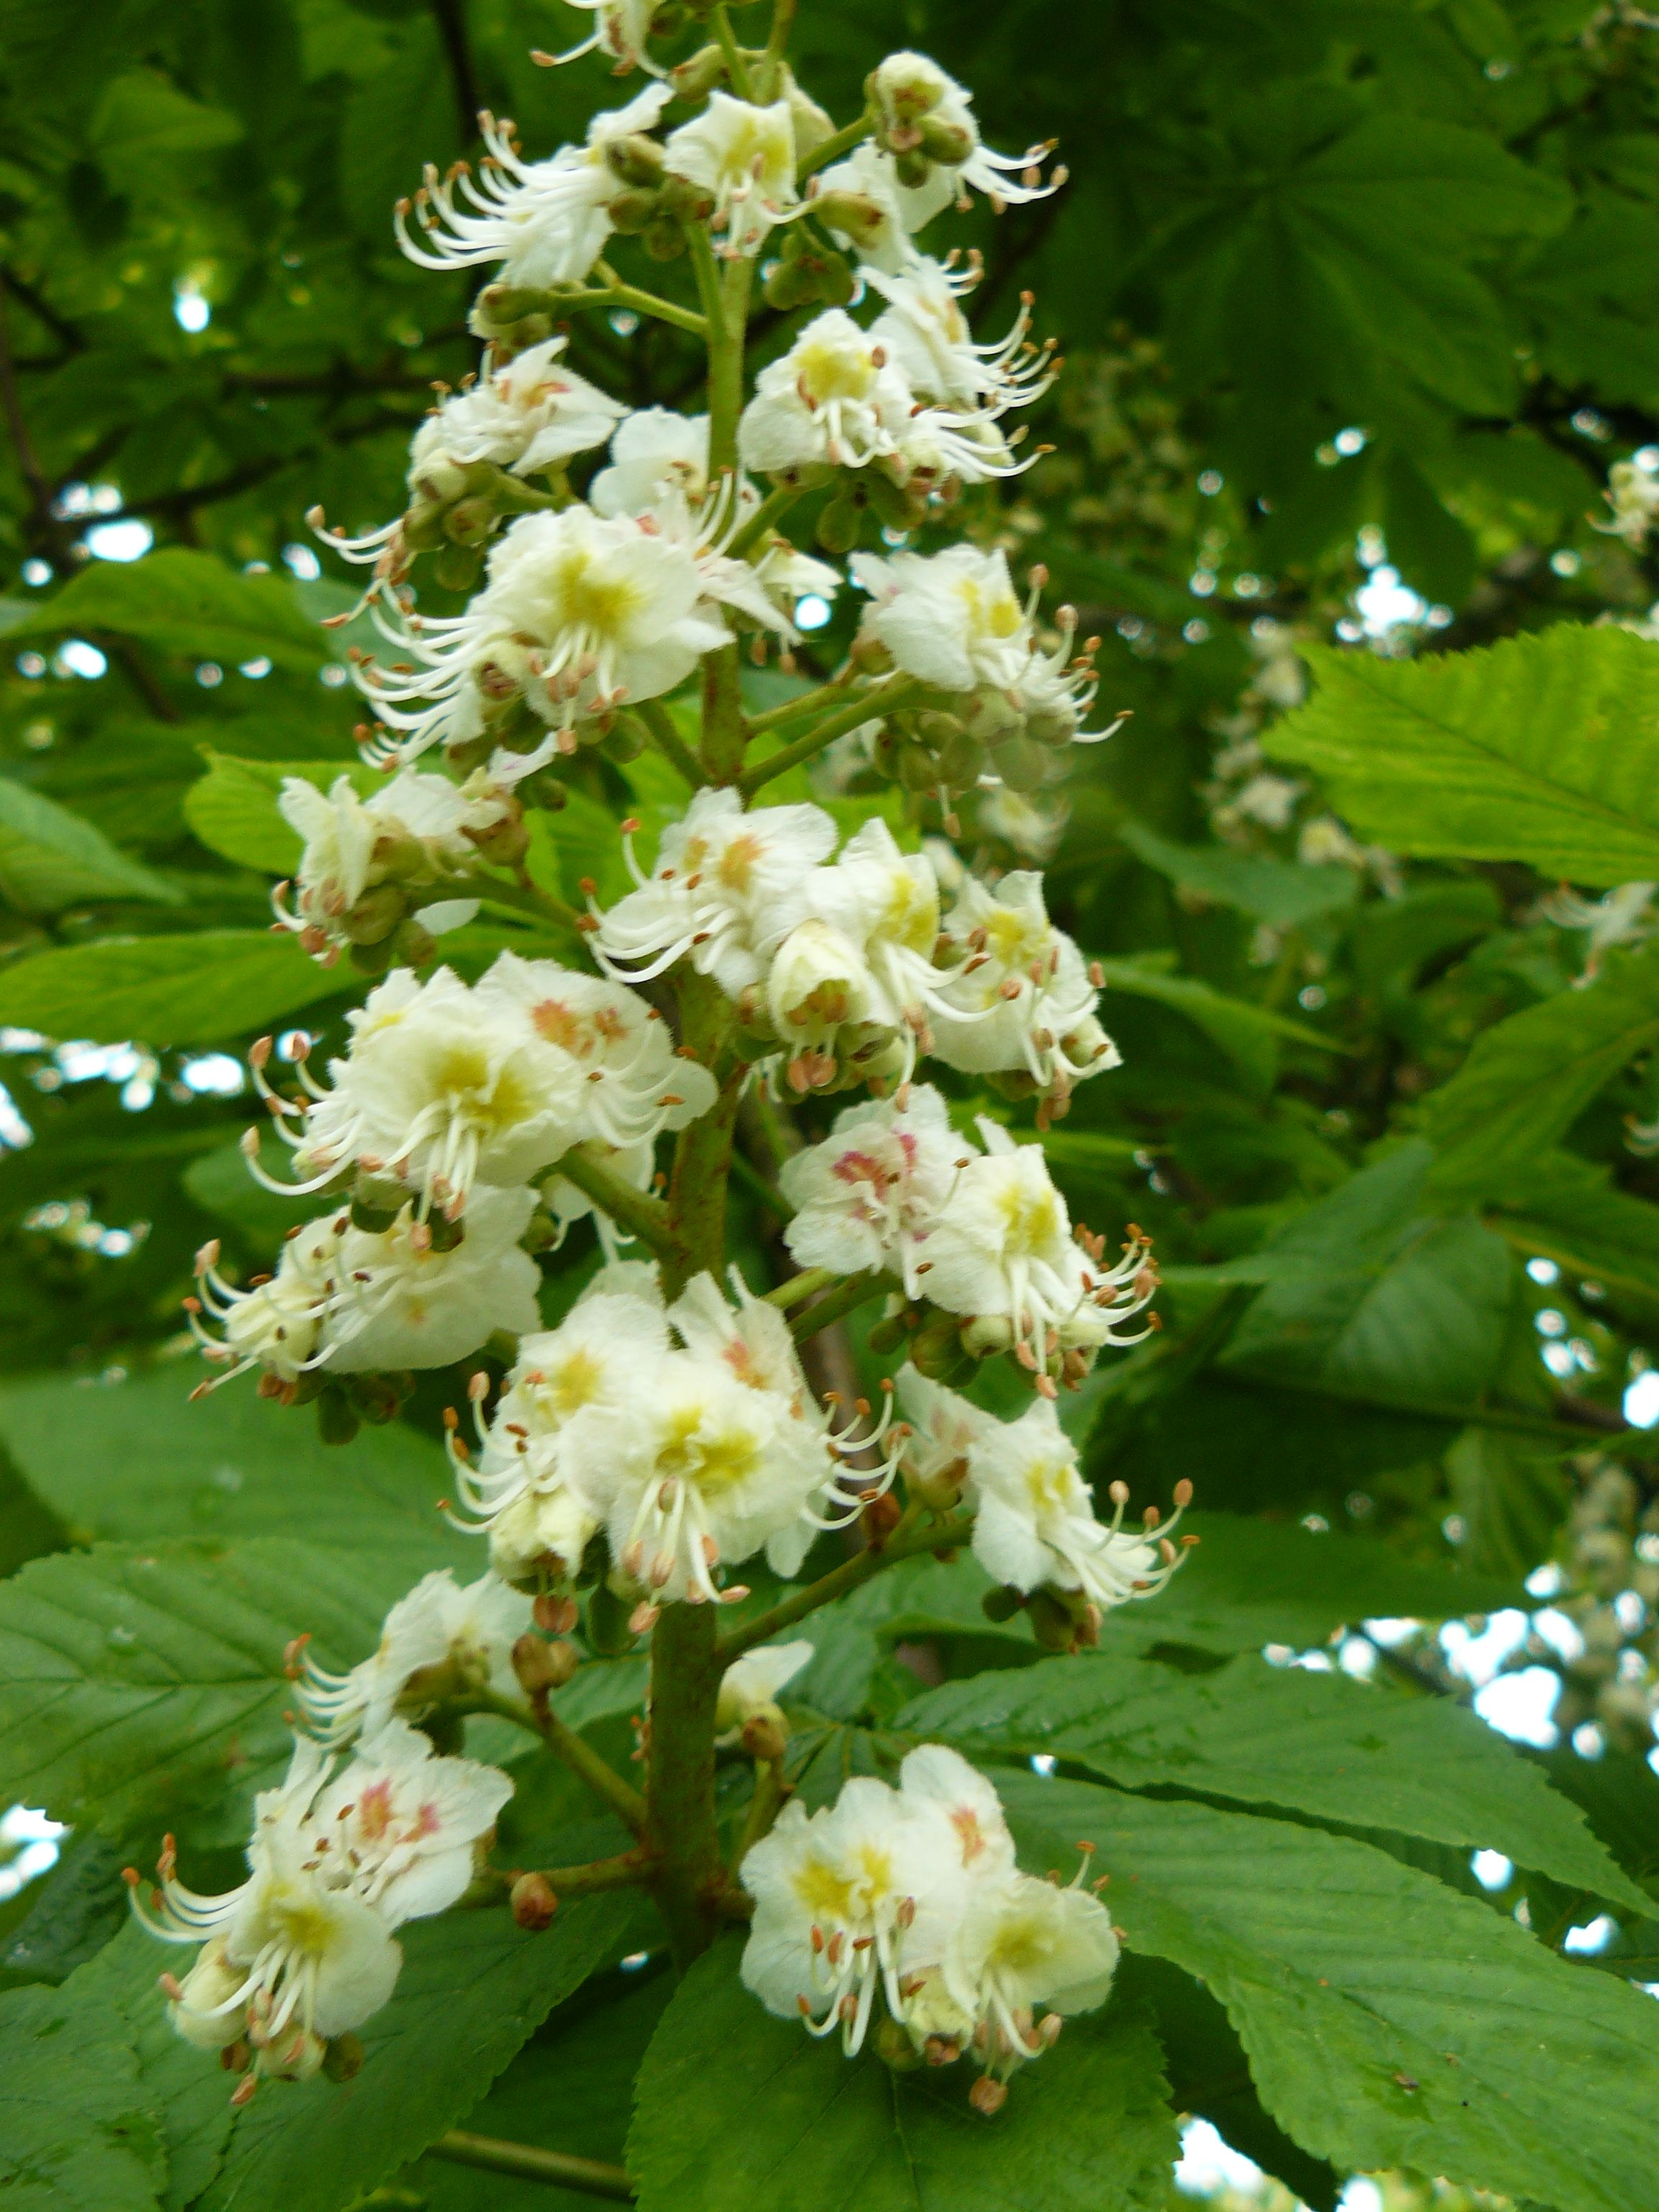 Bach flower white chestnut image collections flower decoration ideas stunning bach flower remedy white chestnut ideas wedding and best bach flower white chestnut ideas wedding mightylinksfo Image collections